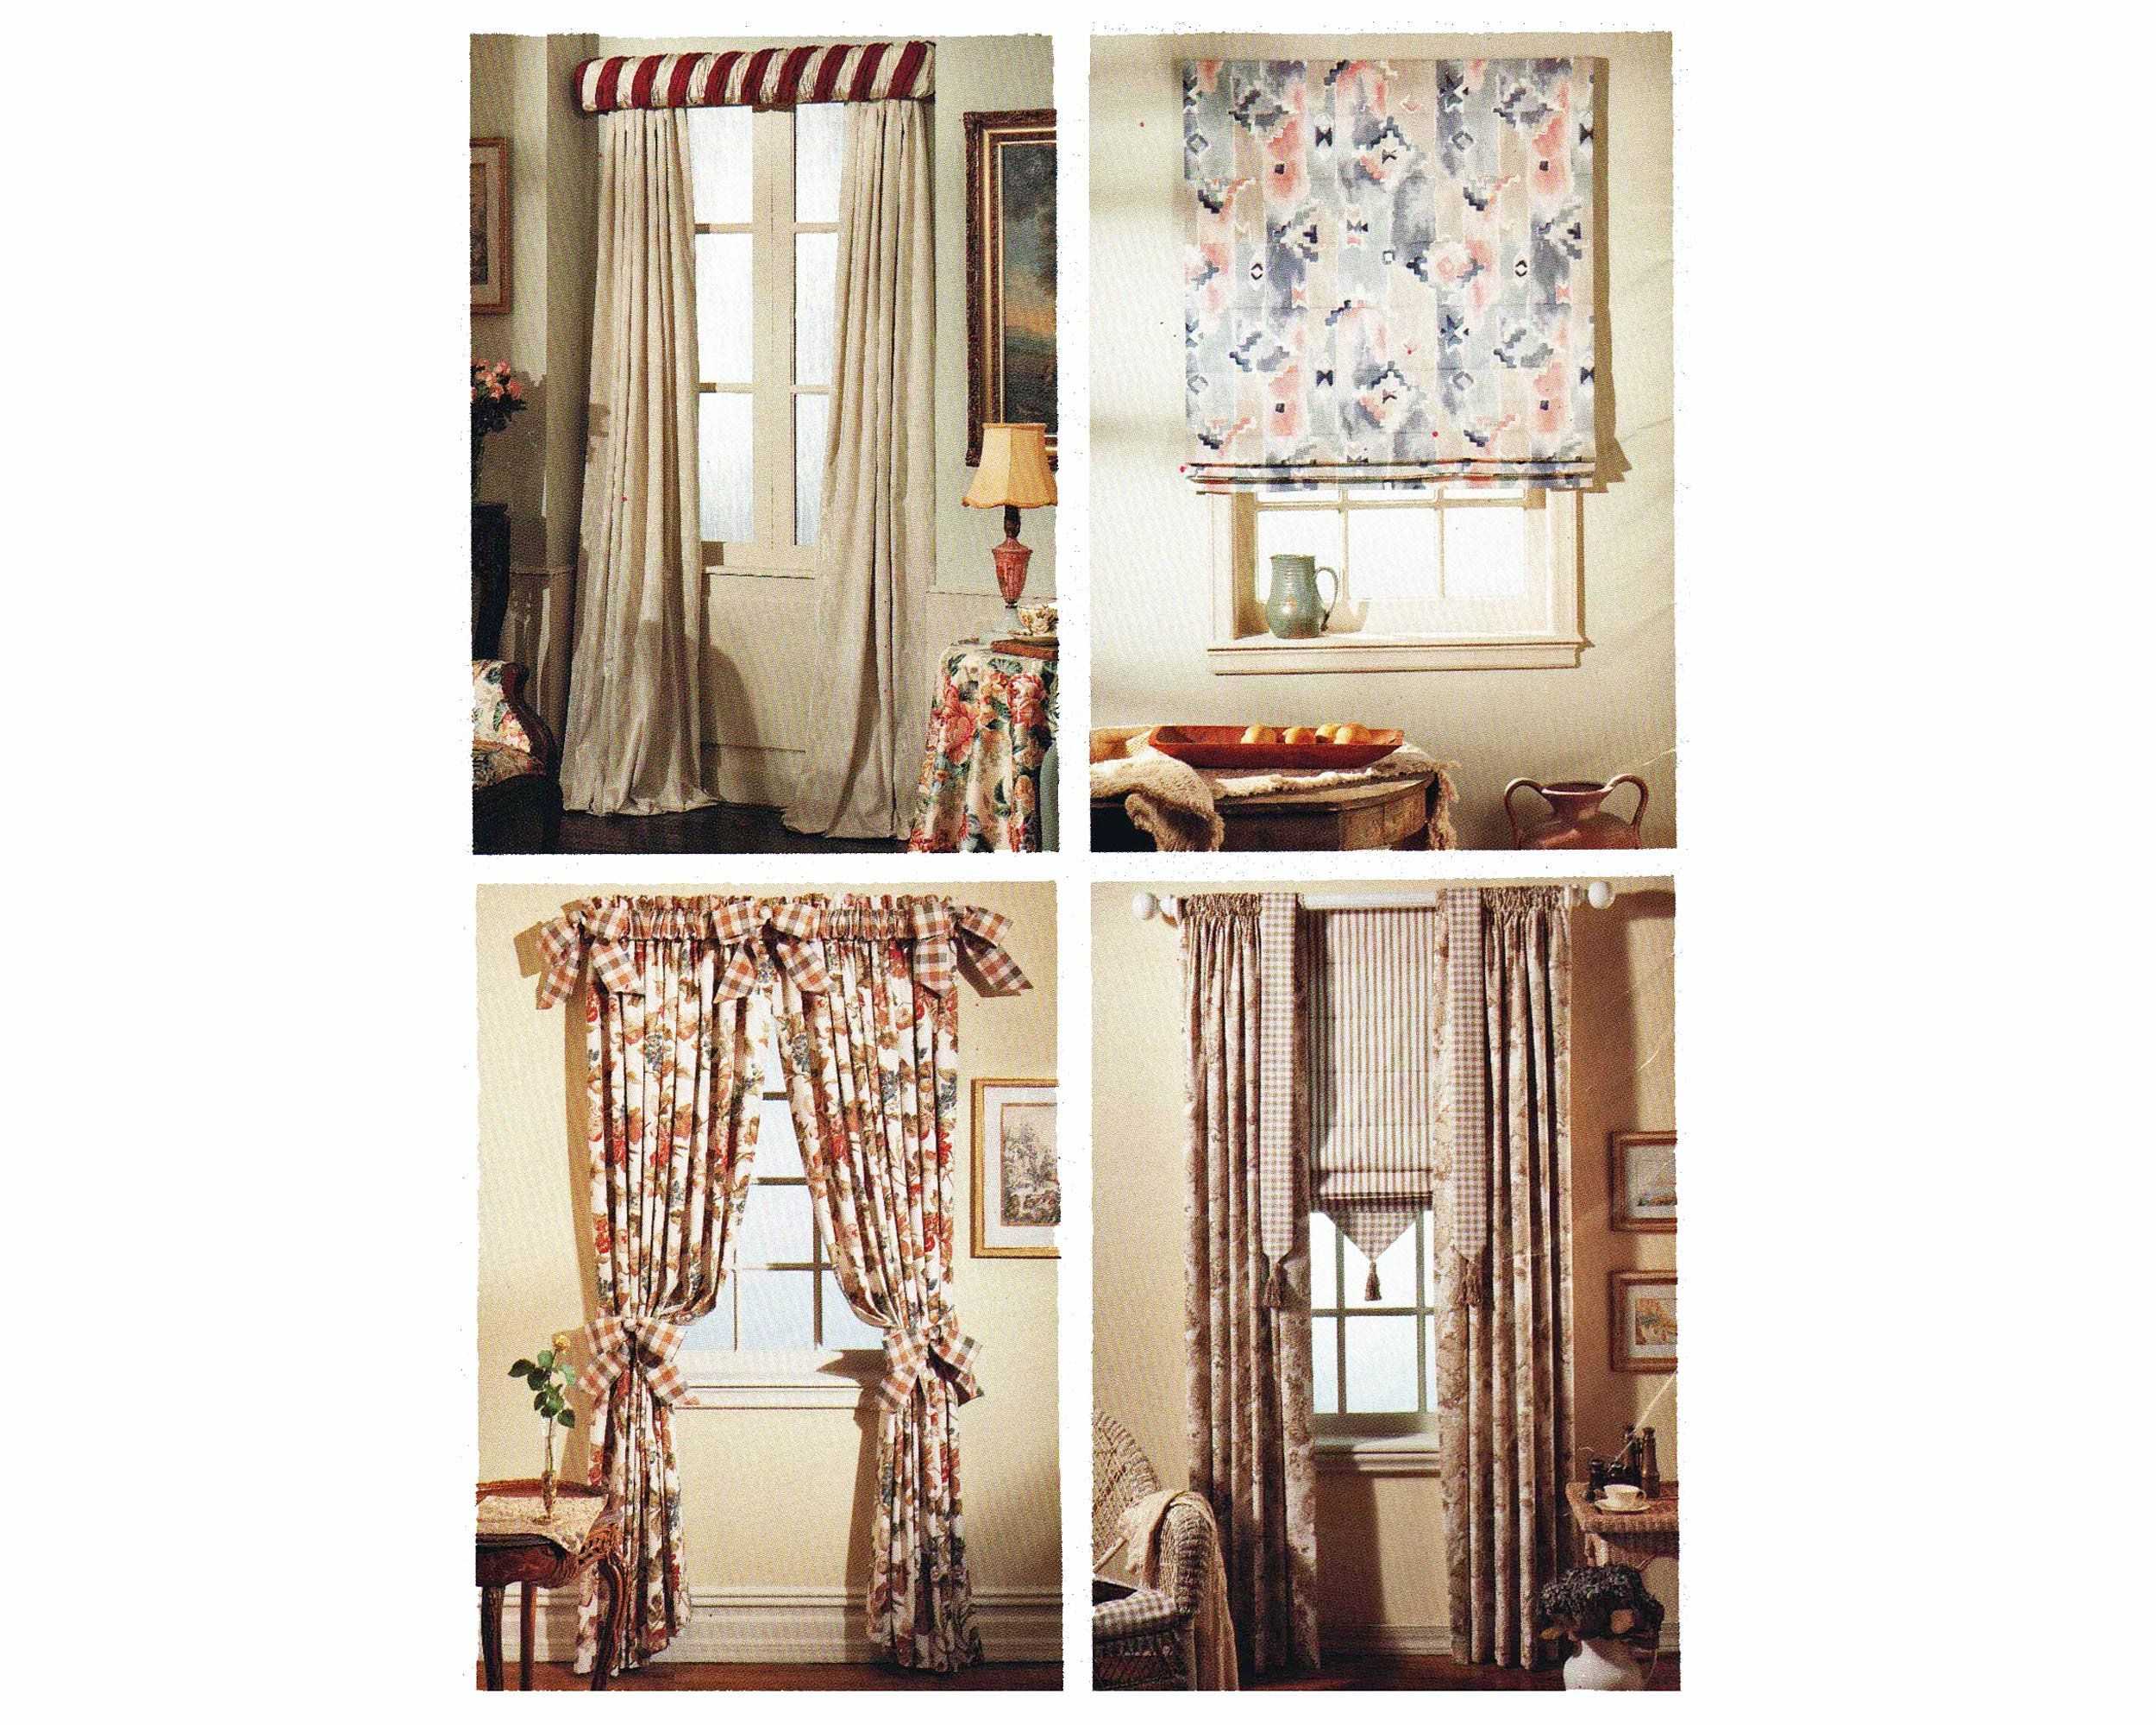 Sewing Pattern For Window Treaments Roman Shade Curtains And Rod Sleeve Mccalls 7937 Uncut Home Decor Curtain Patterns Patterned Window Treatments